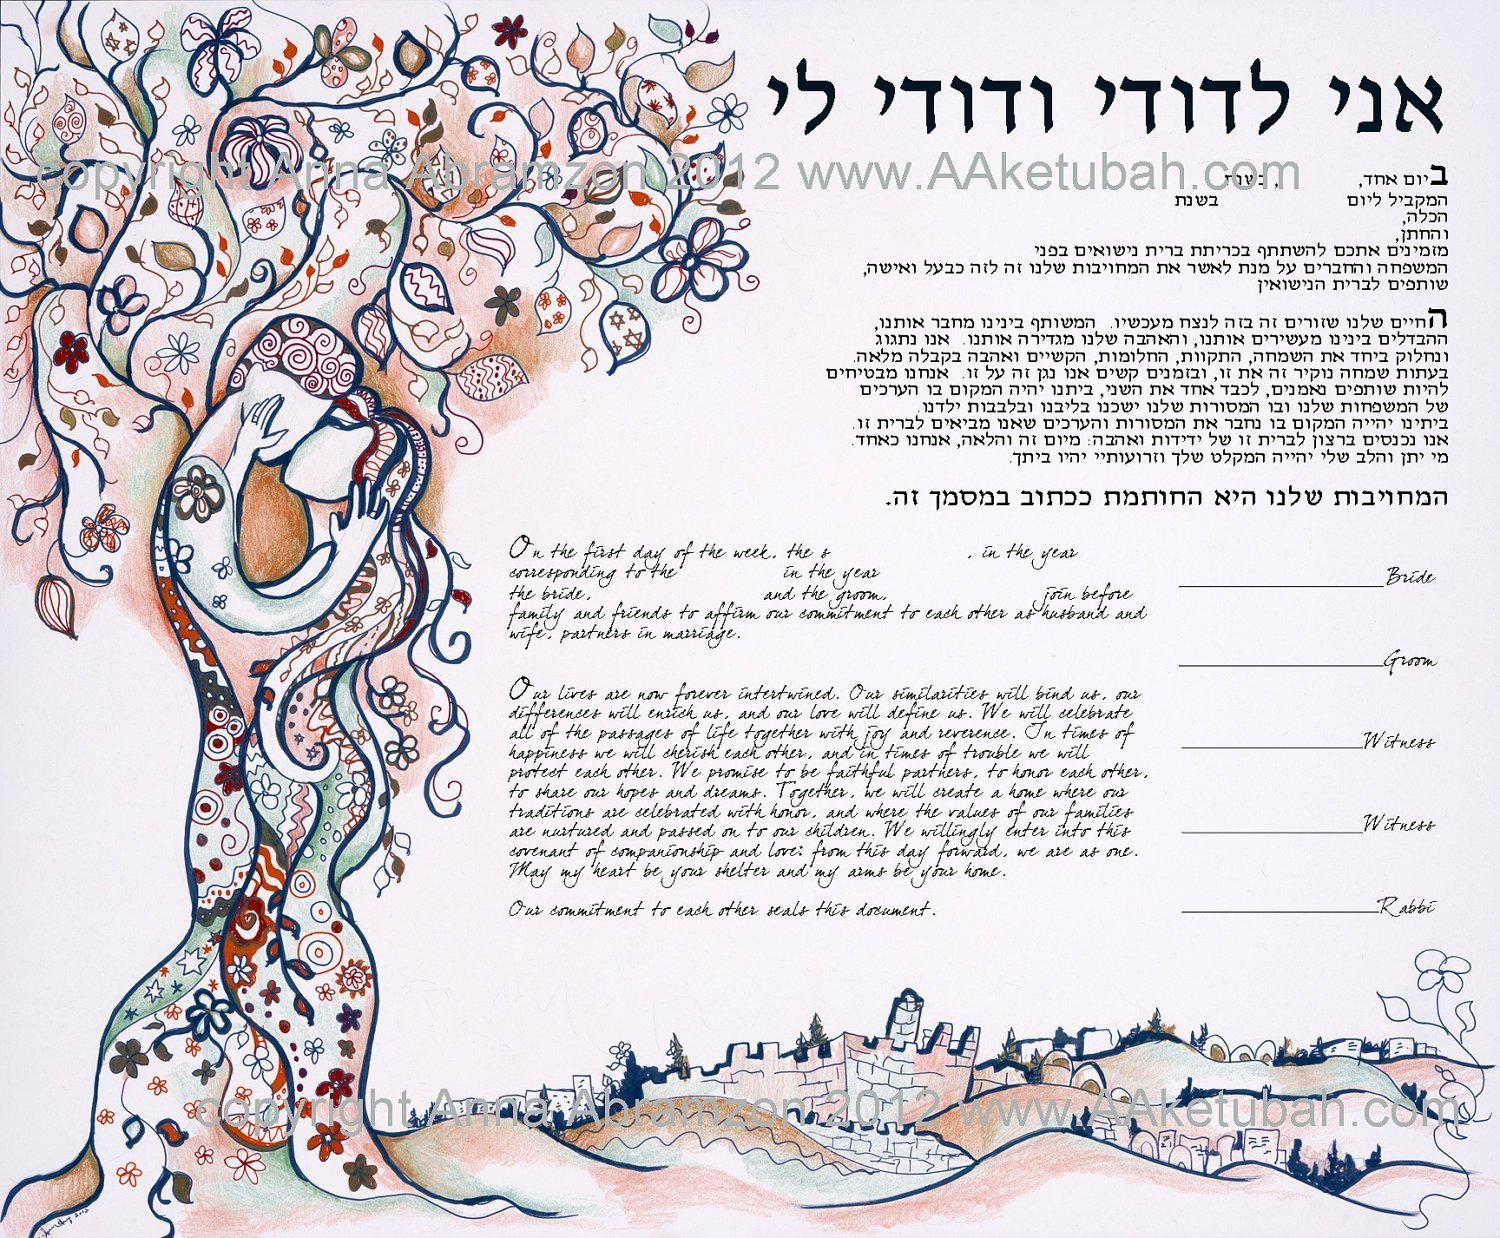 Jerusalem Love Tree Ketubah Marriage Contract in Vintage Earth Tones